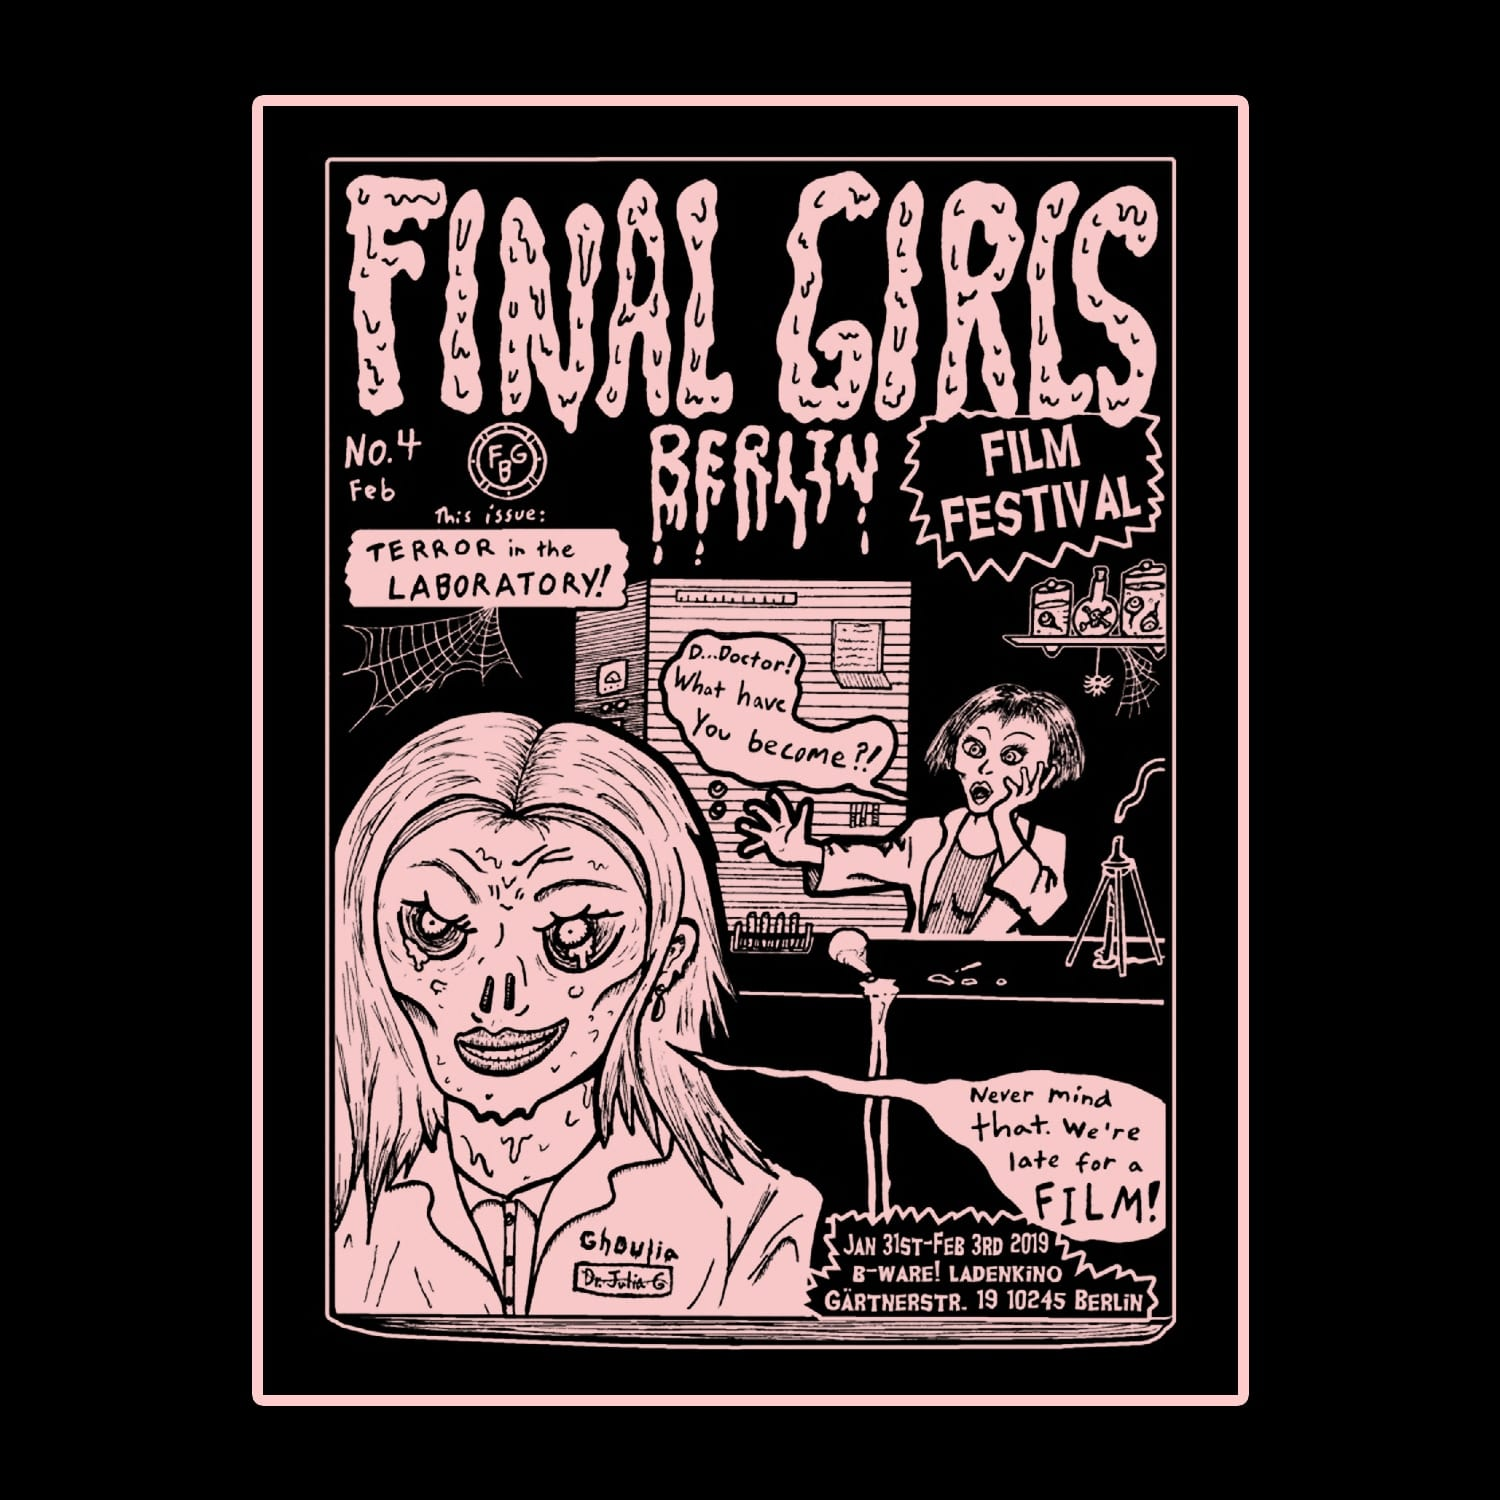 Logged In and Freaked Out at Final Girls Film Festival